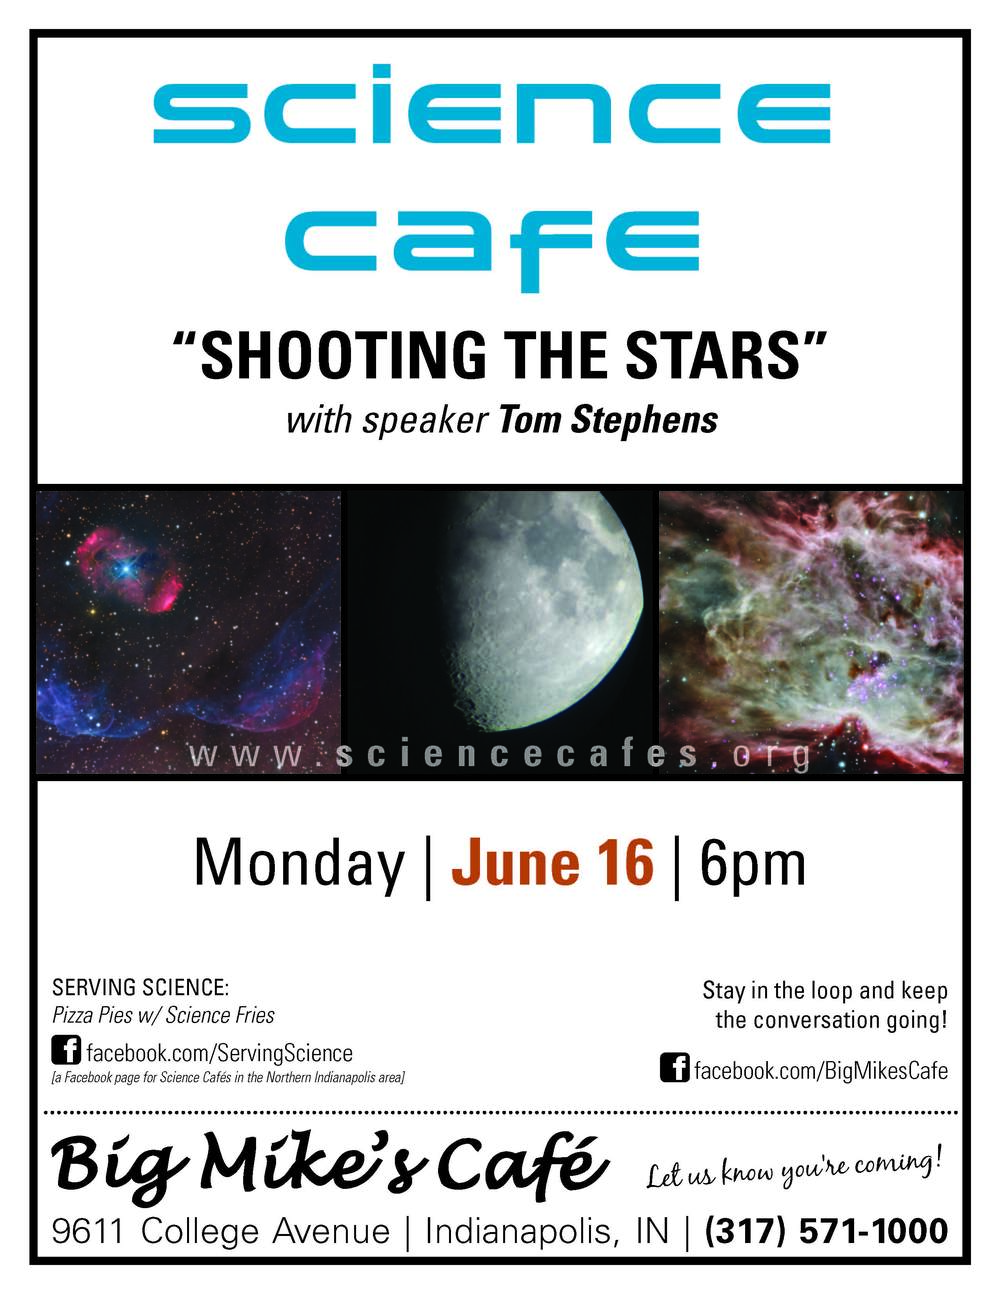 ScienceCafe_ShootingTheStars.jpg